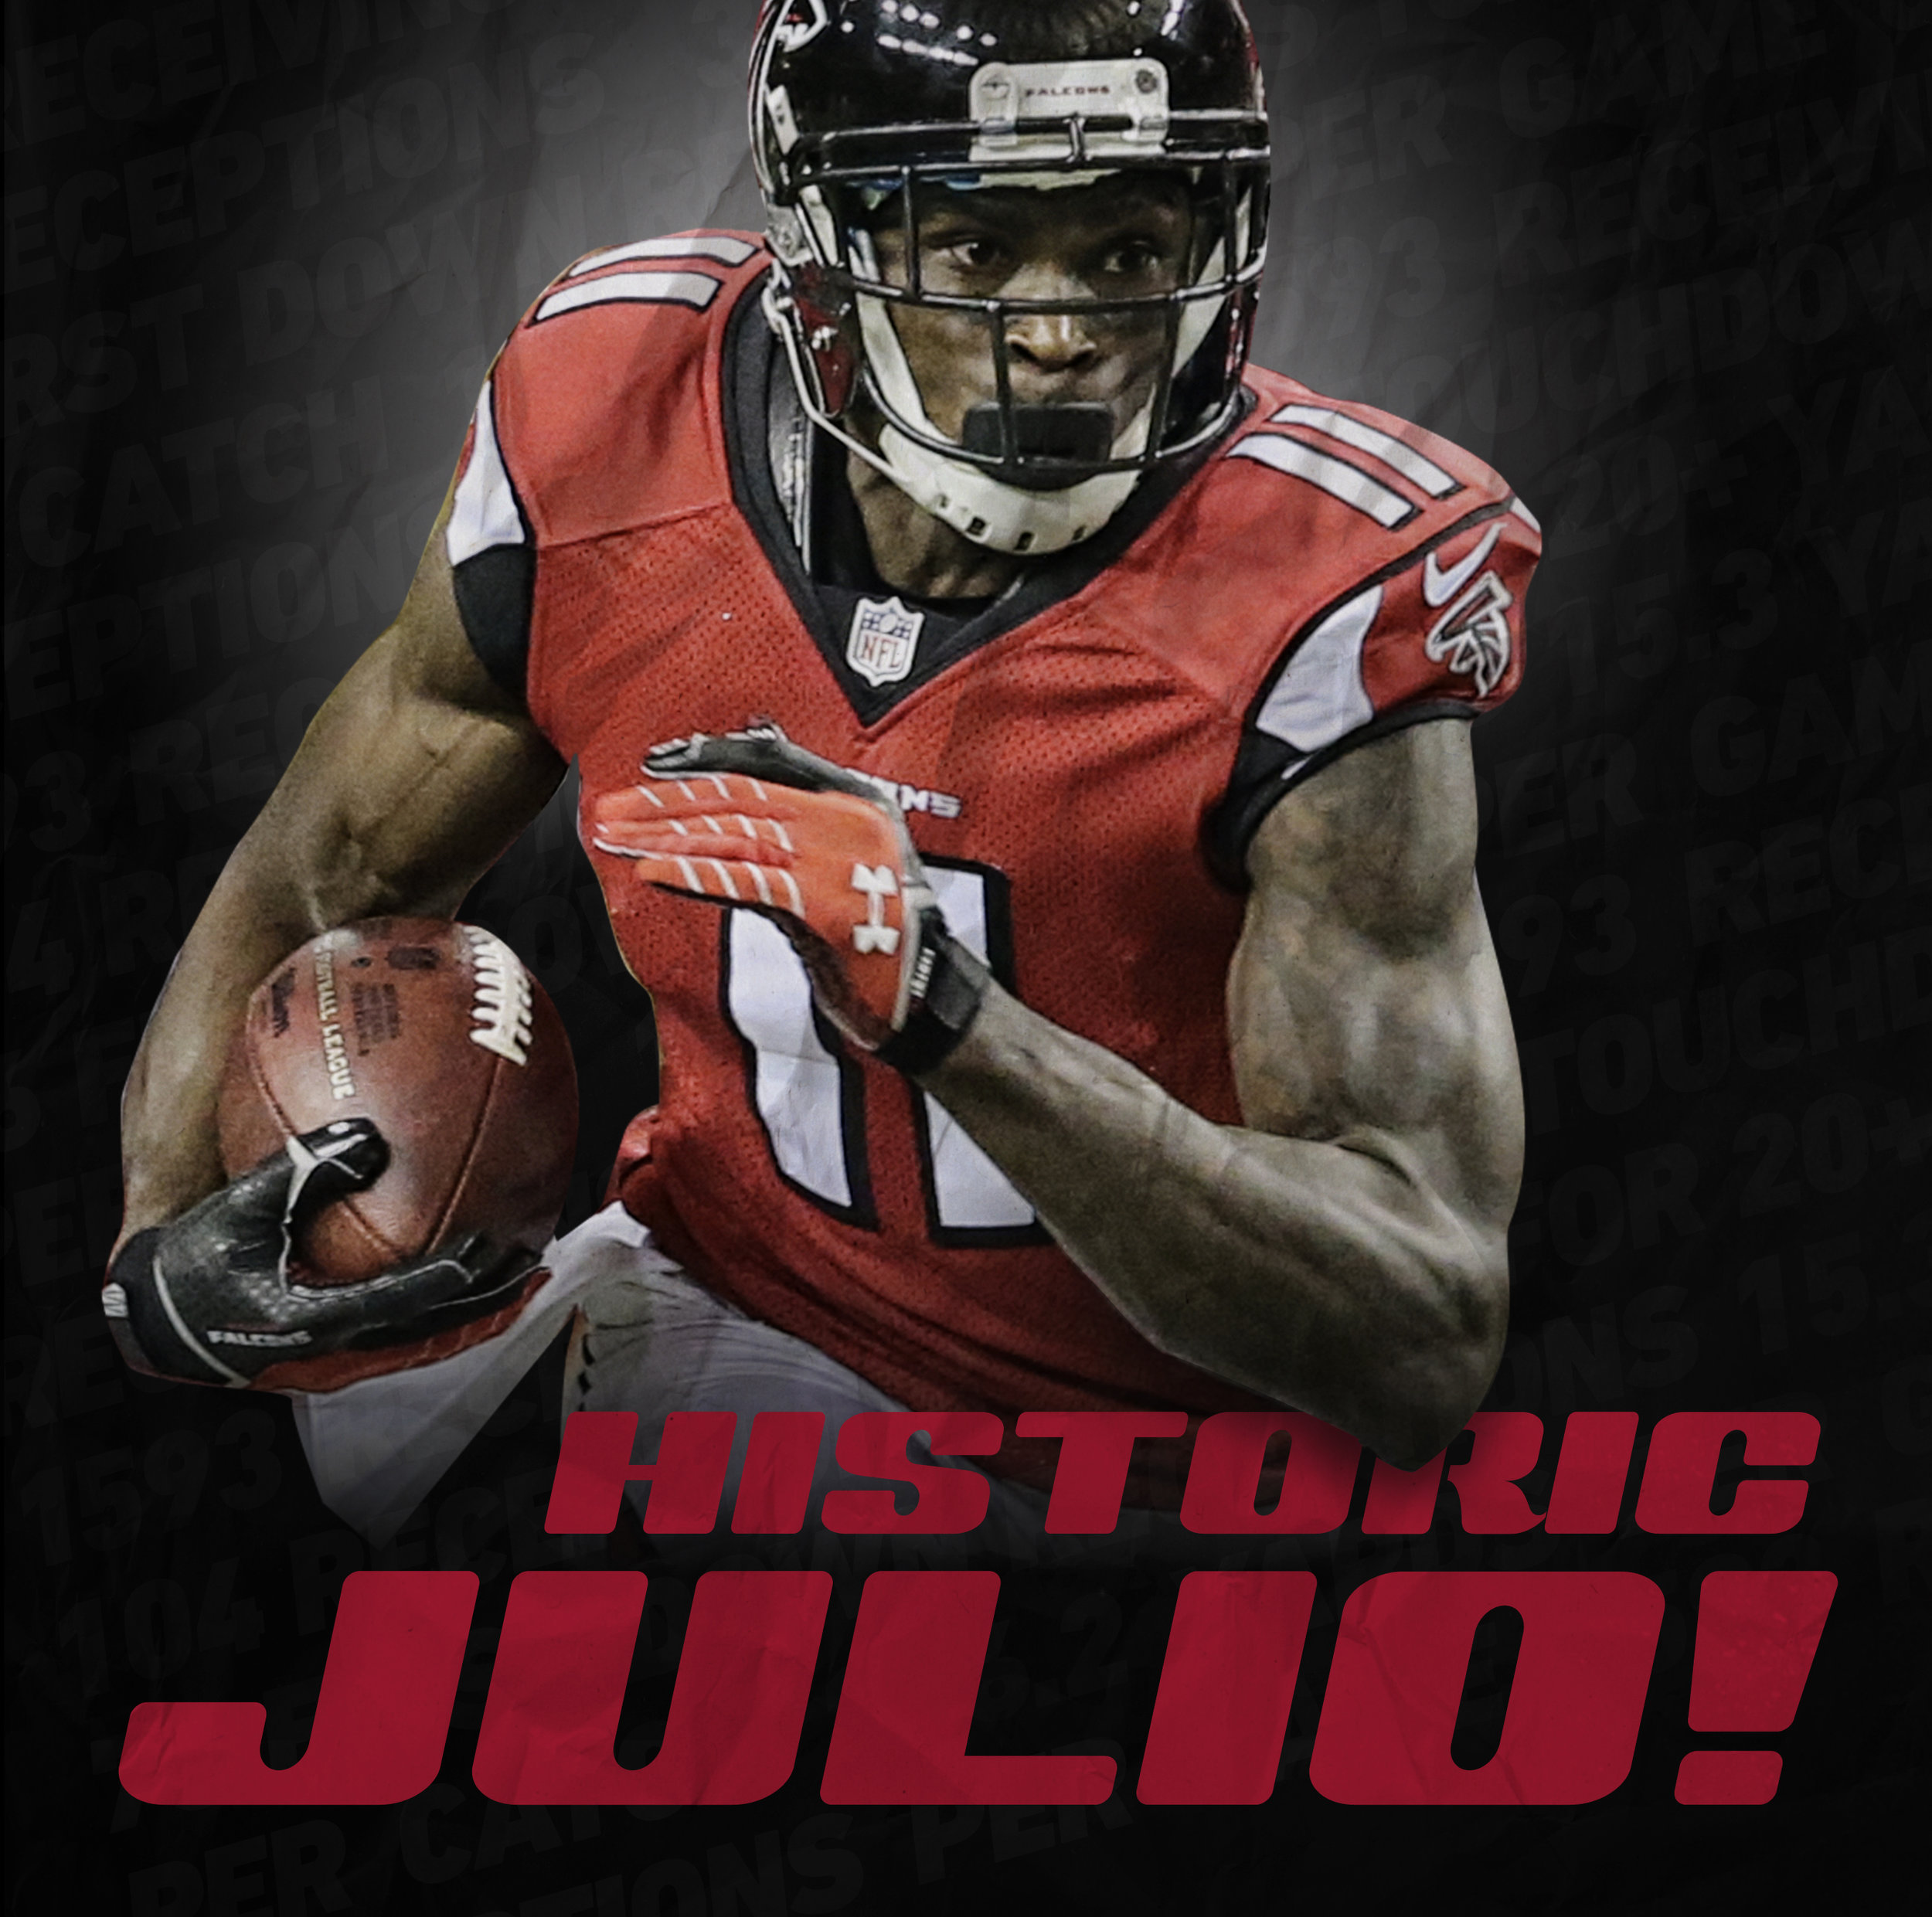 Julio Jones Data Visualization - It was only a matter of time before Julio Jones would rewrite the Falcons record book and 2014 was that year. From his productivity during the year to where he stands in Falcons history, we take a closer look at what made Julios 2014 so special. The challenge was to develop an infographic that highlights Julio Jones historic record-breaking season in a digestible format that can be utilized in both print and digital mediums.